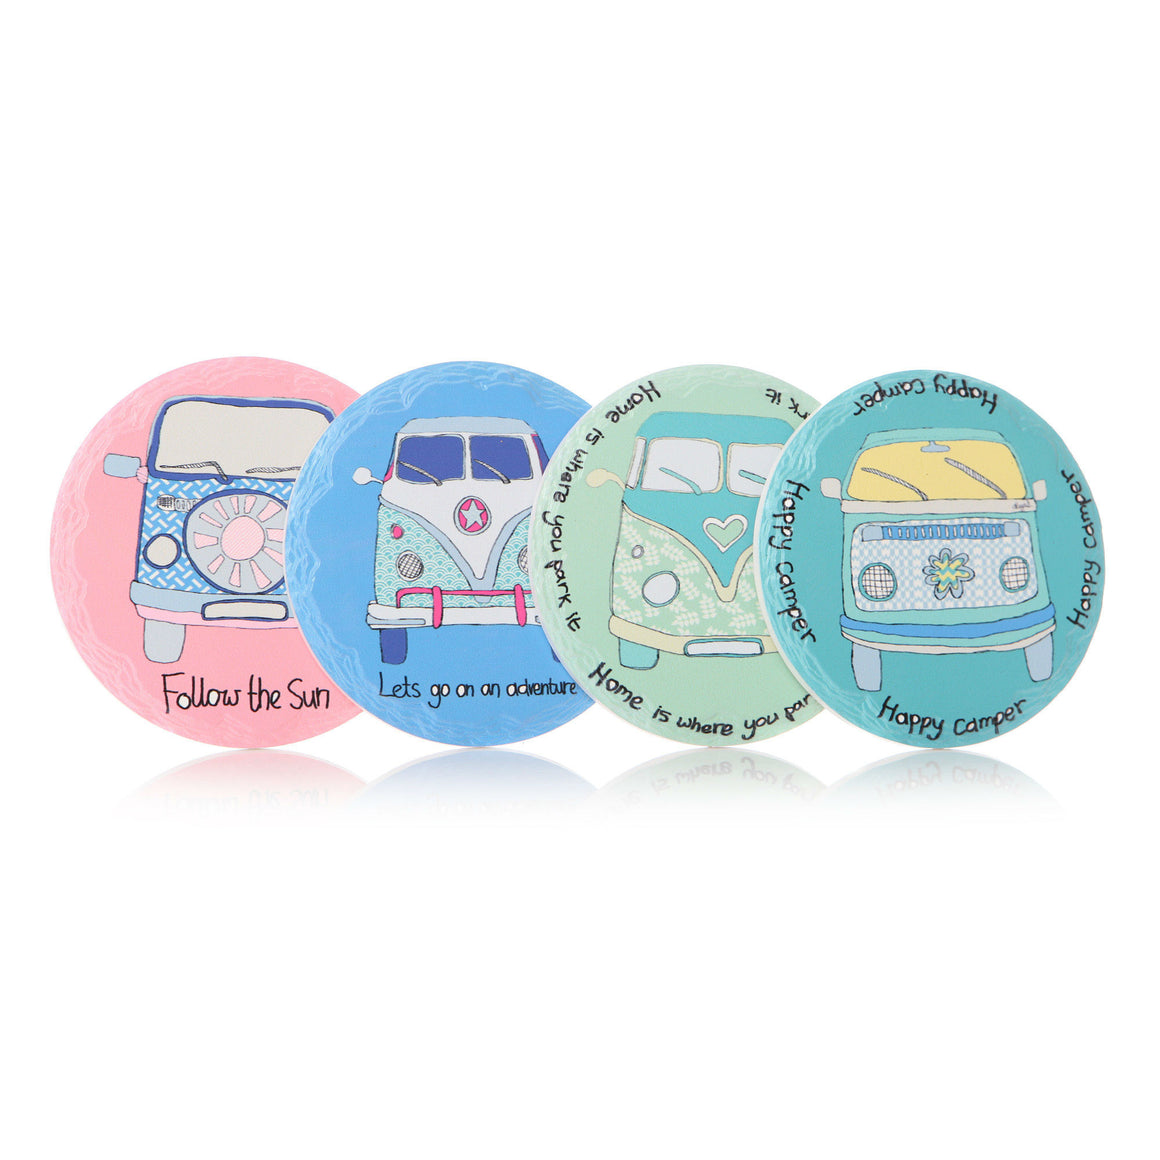 Set of 4 Round Happy Camper Coasters - The Love Trees